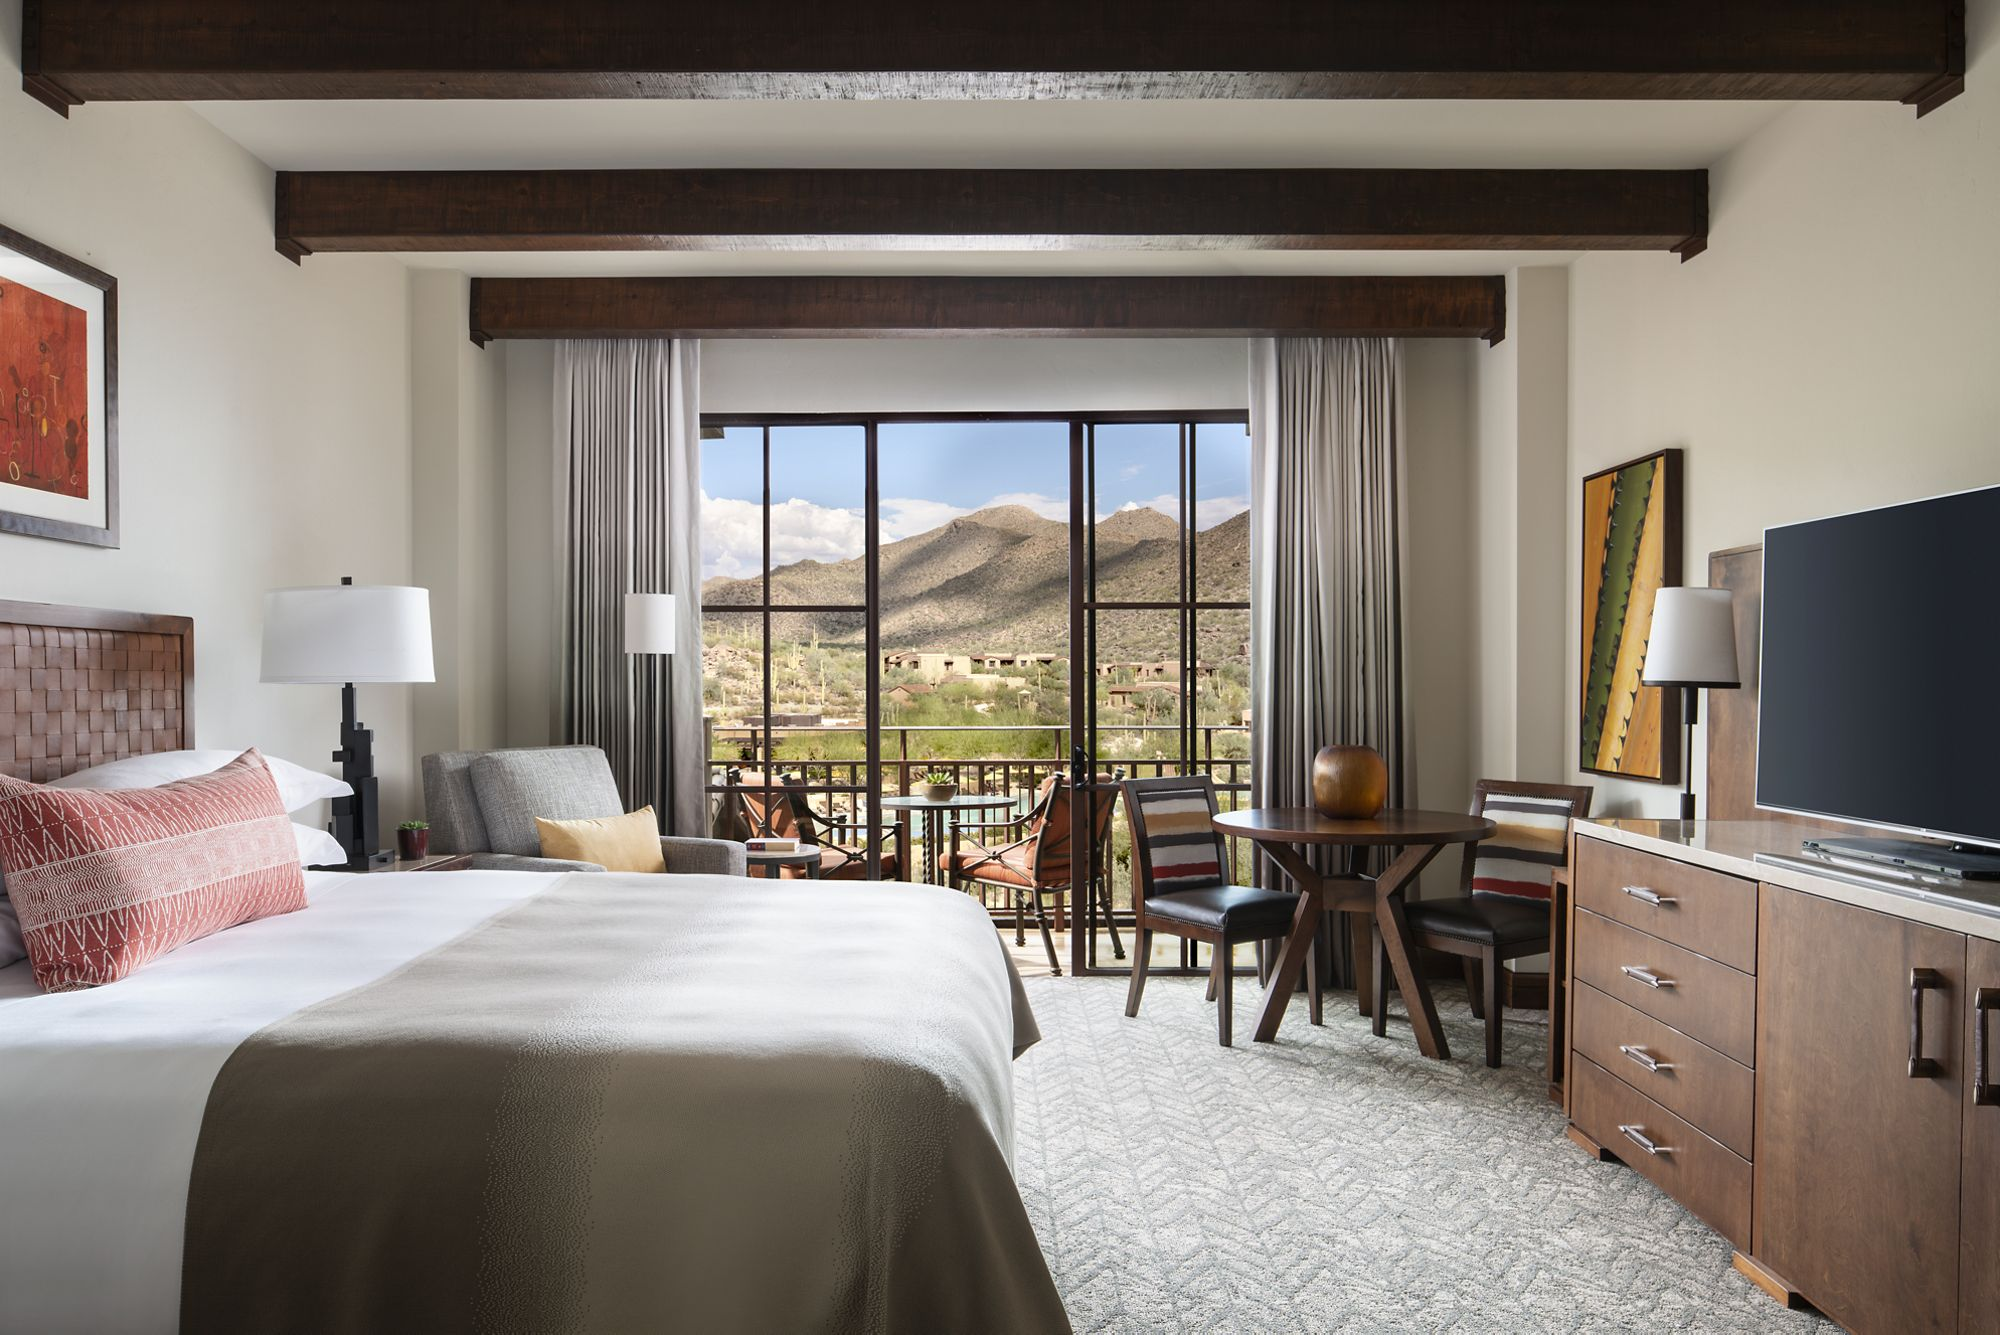 Hotel room with a wooden table a bed and a balcony overlooking the desert foothills.